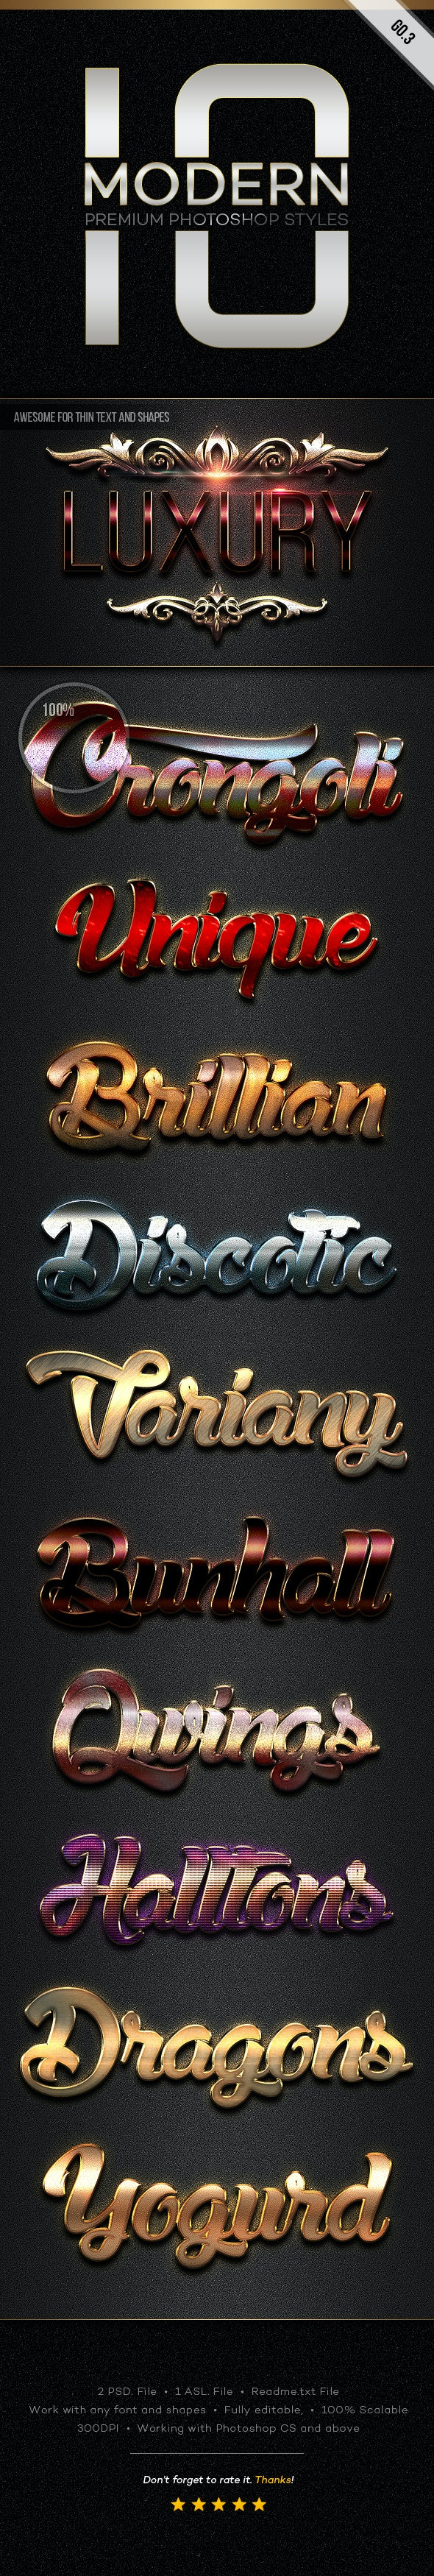 10 Modern Styles GO.3 - Text Effects Styles